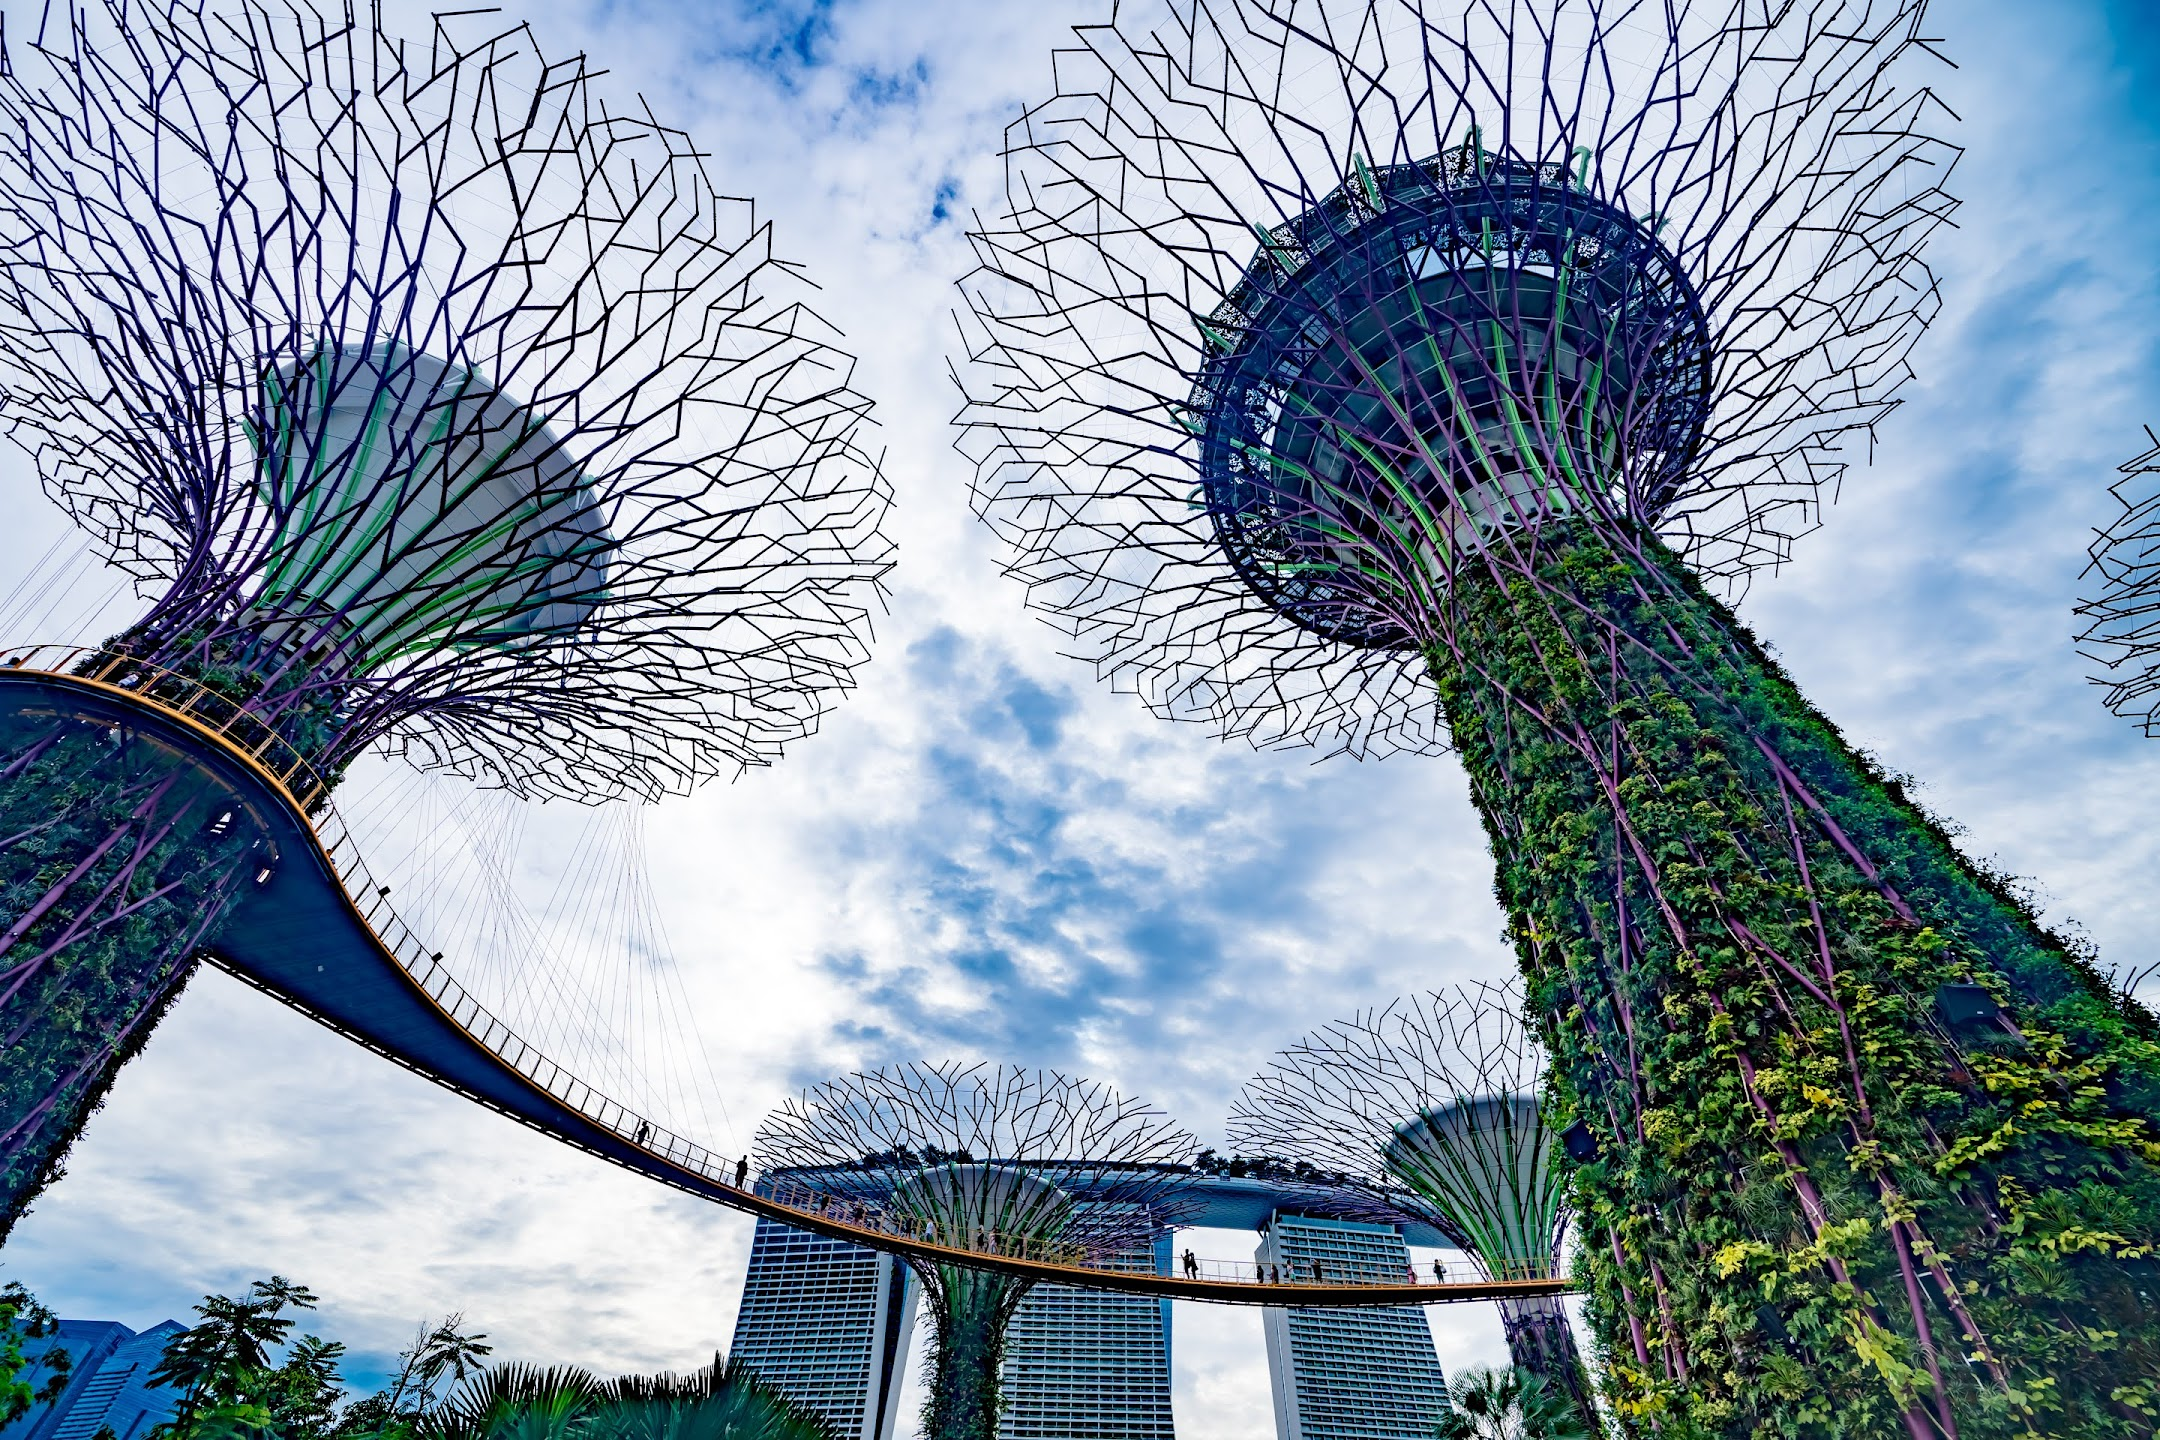 Singapore Gardens by the Bay Supertree Grove2